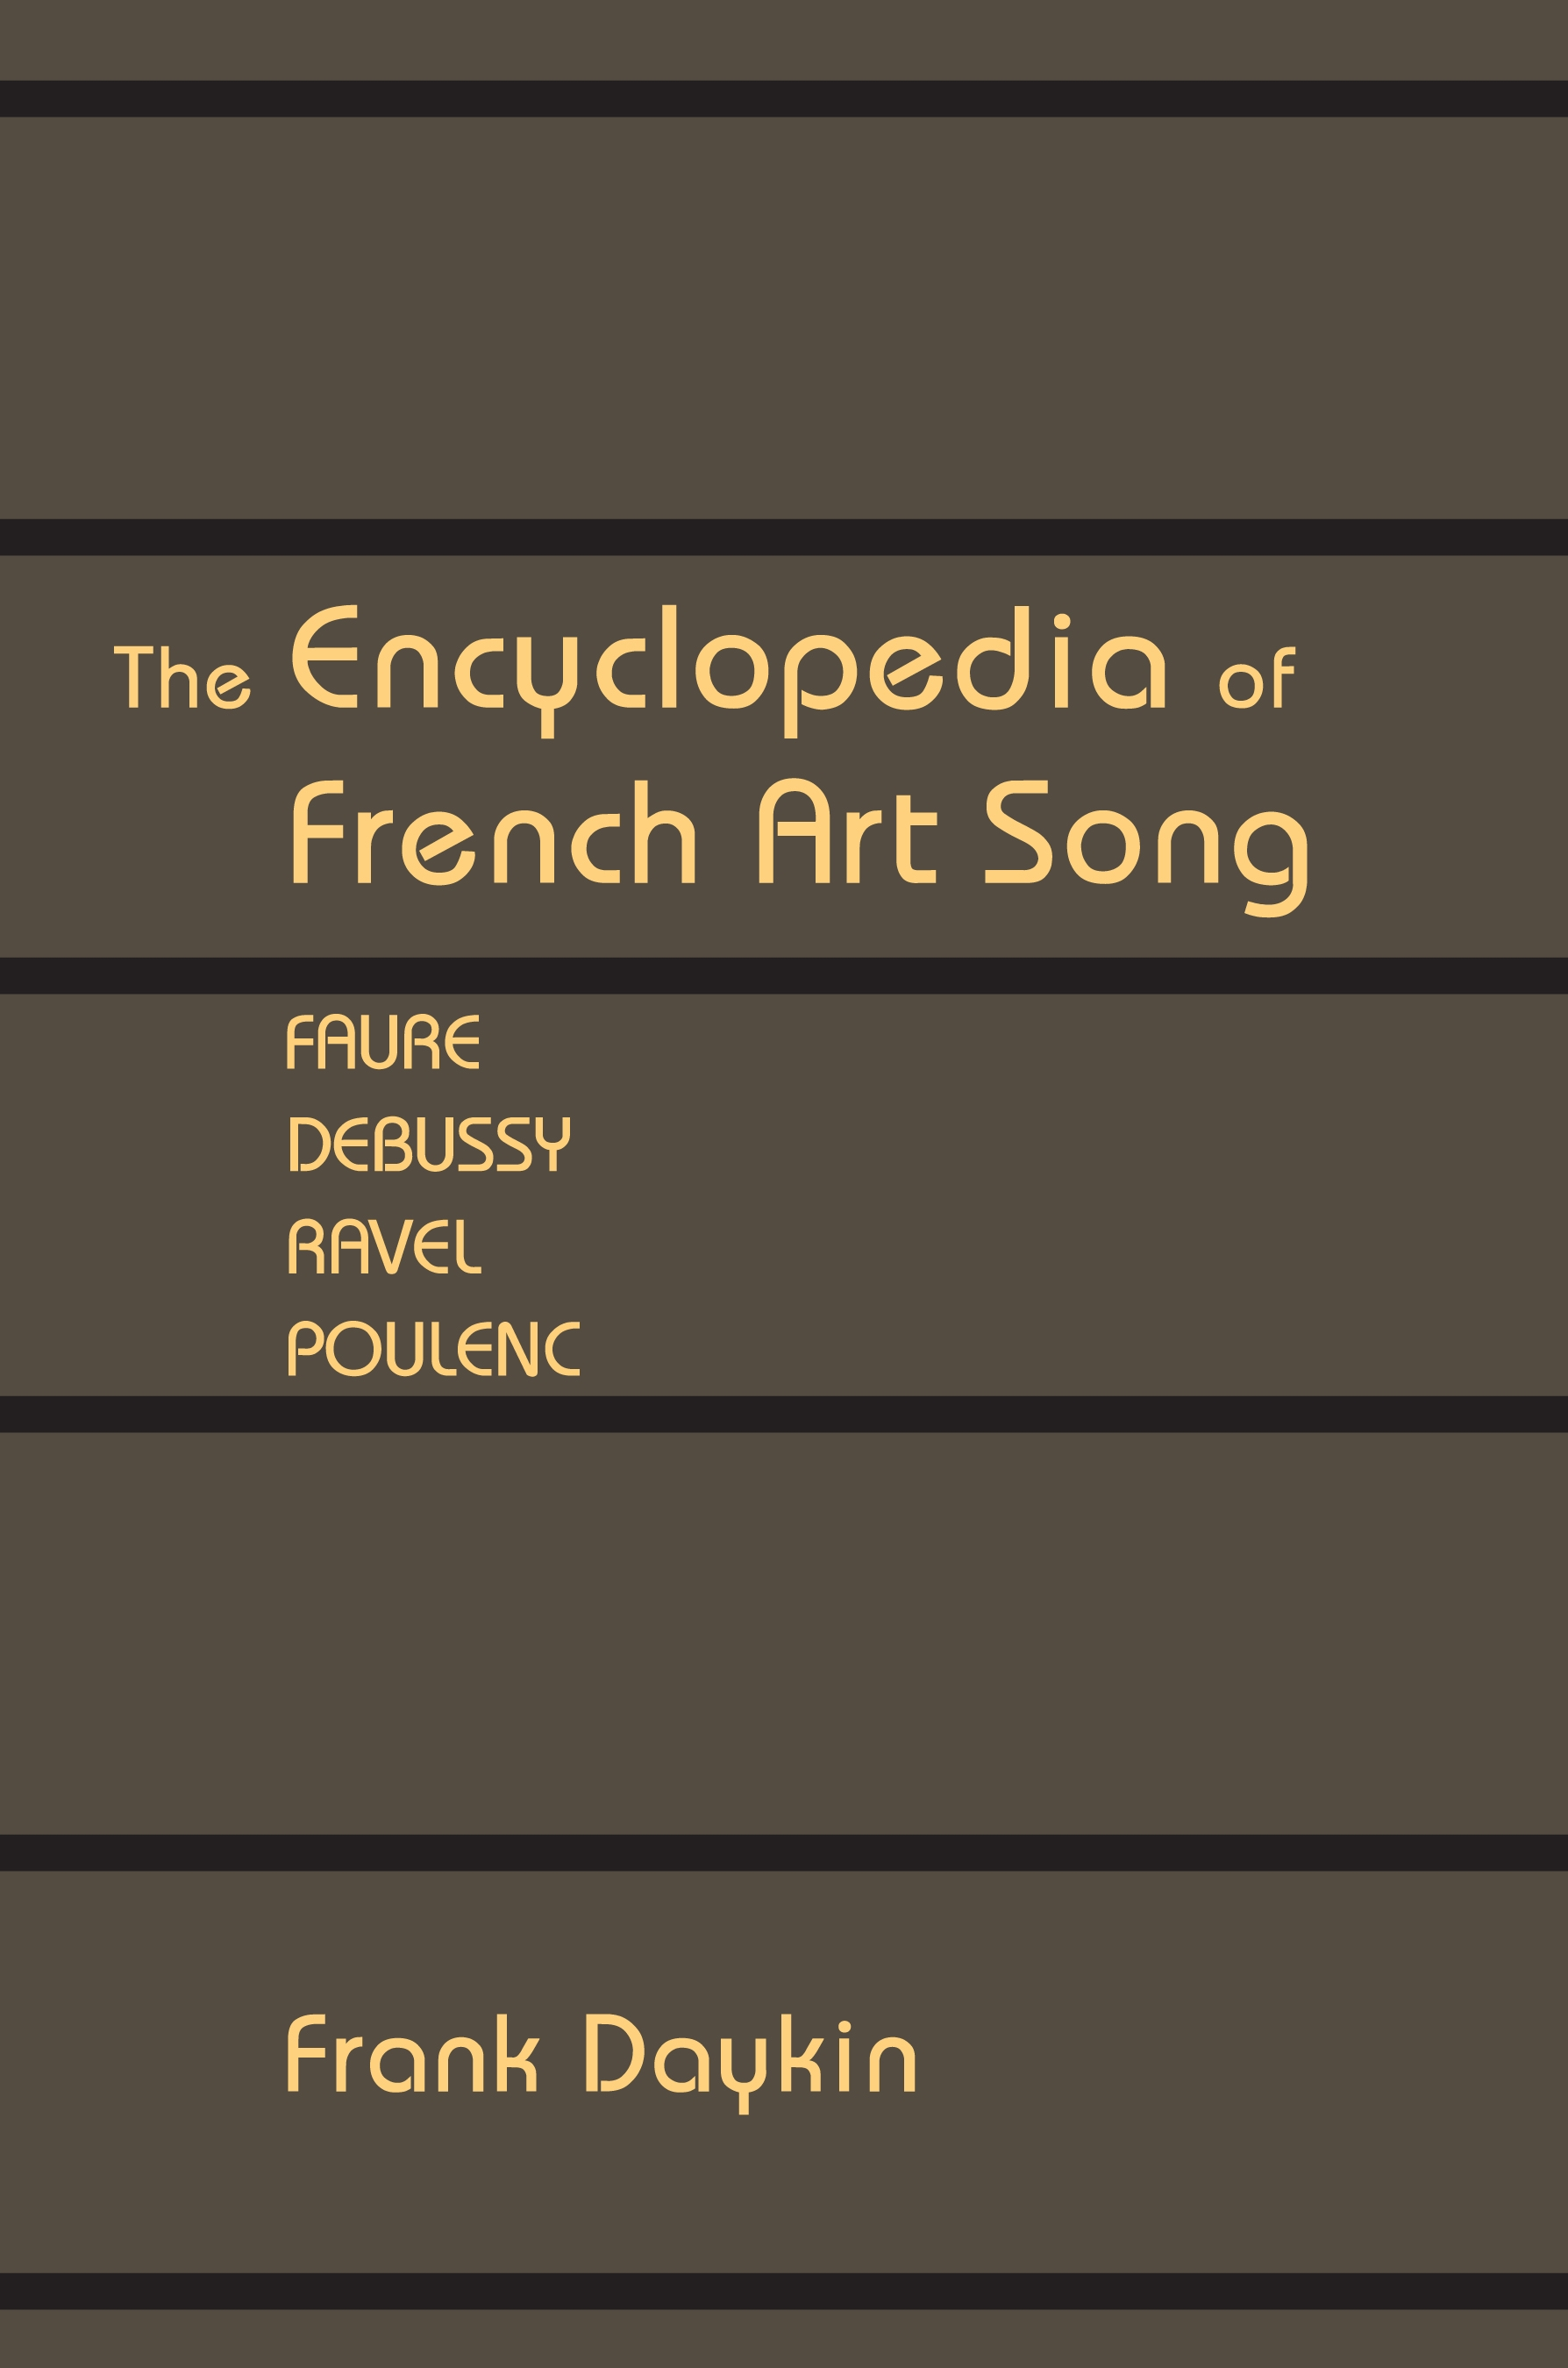 The Encyclopedia of French Art Song